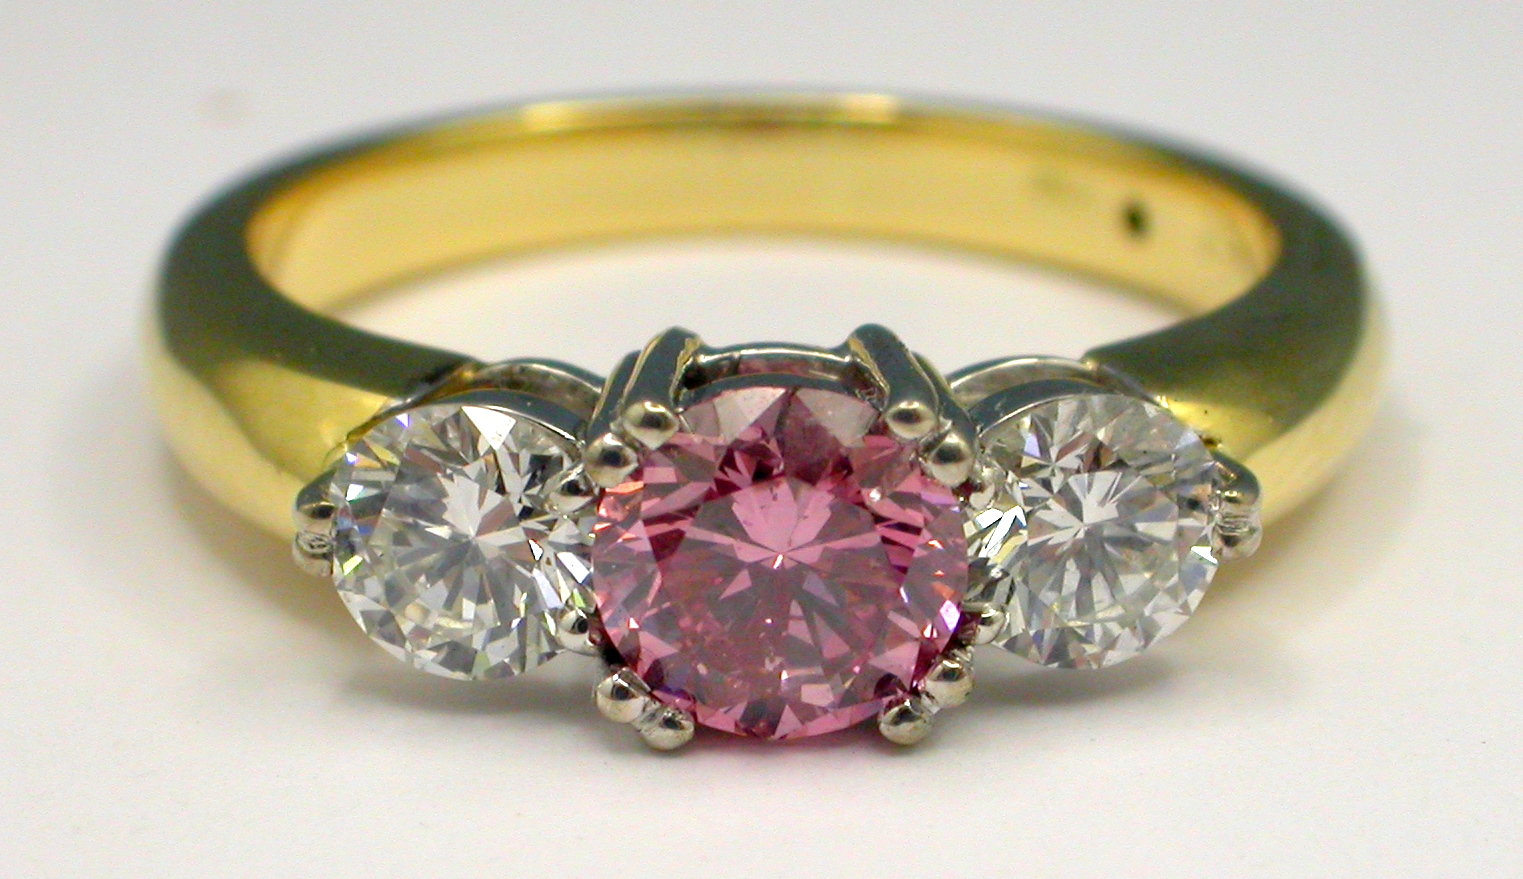 Argyle Pink Diamond Engagement Ring JEWELLERY A Genius with Gems